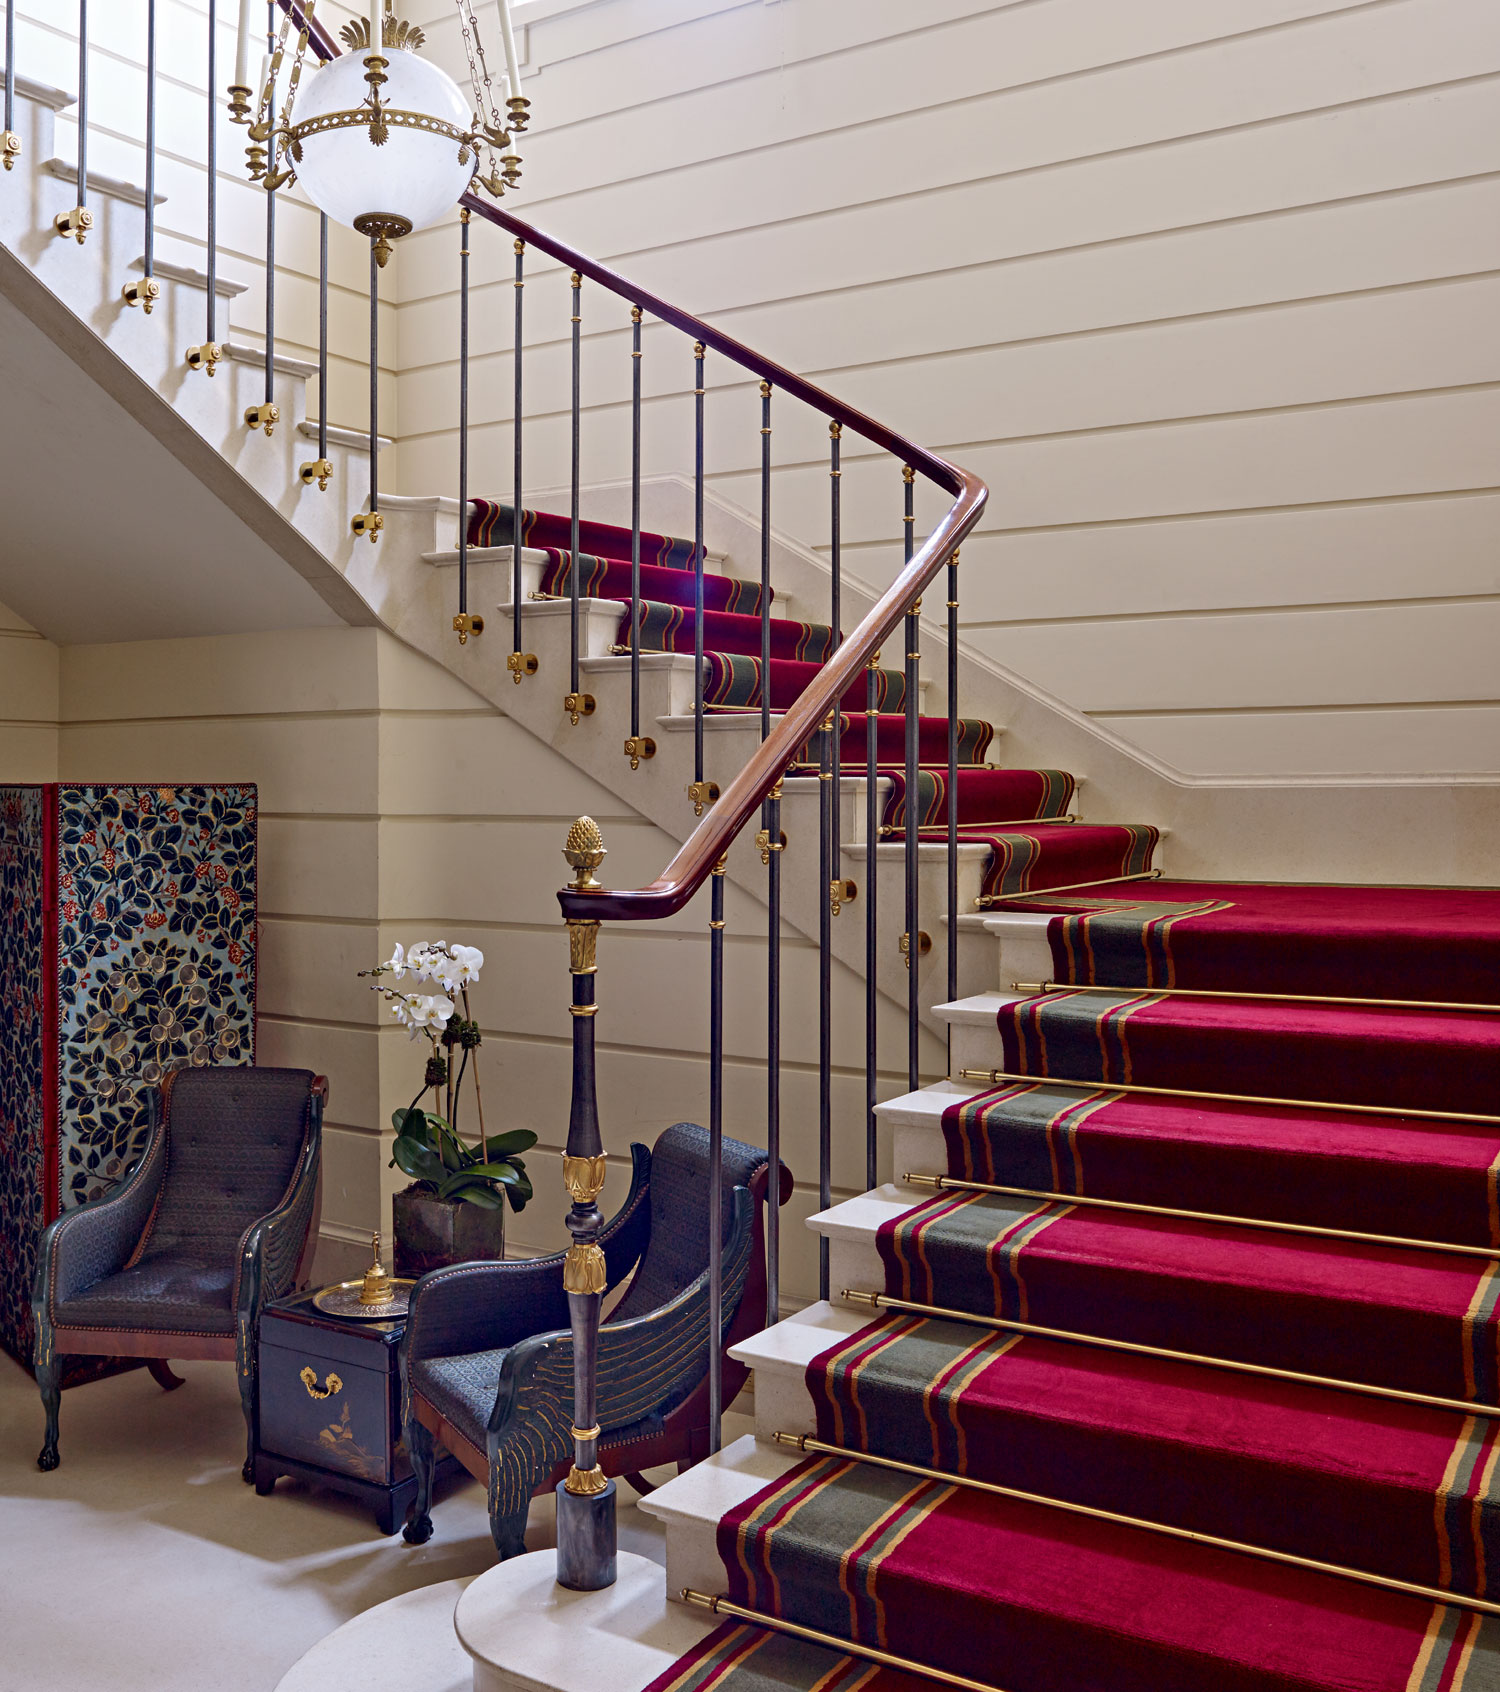 The marble and steel staircase draws inspiration from French châteaux, and was imported to decorate the gallery that leads to the upper floor.